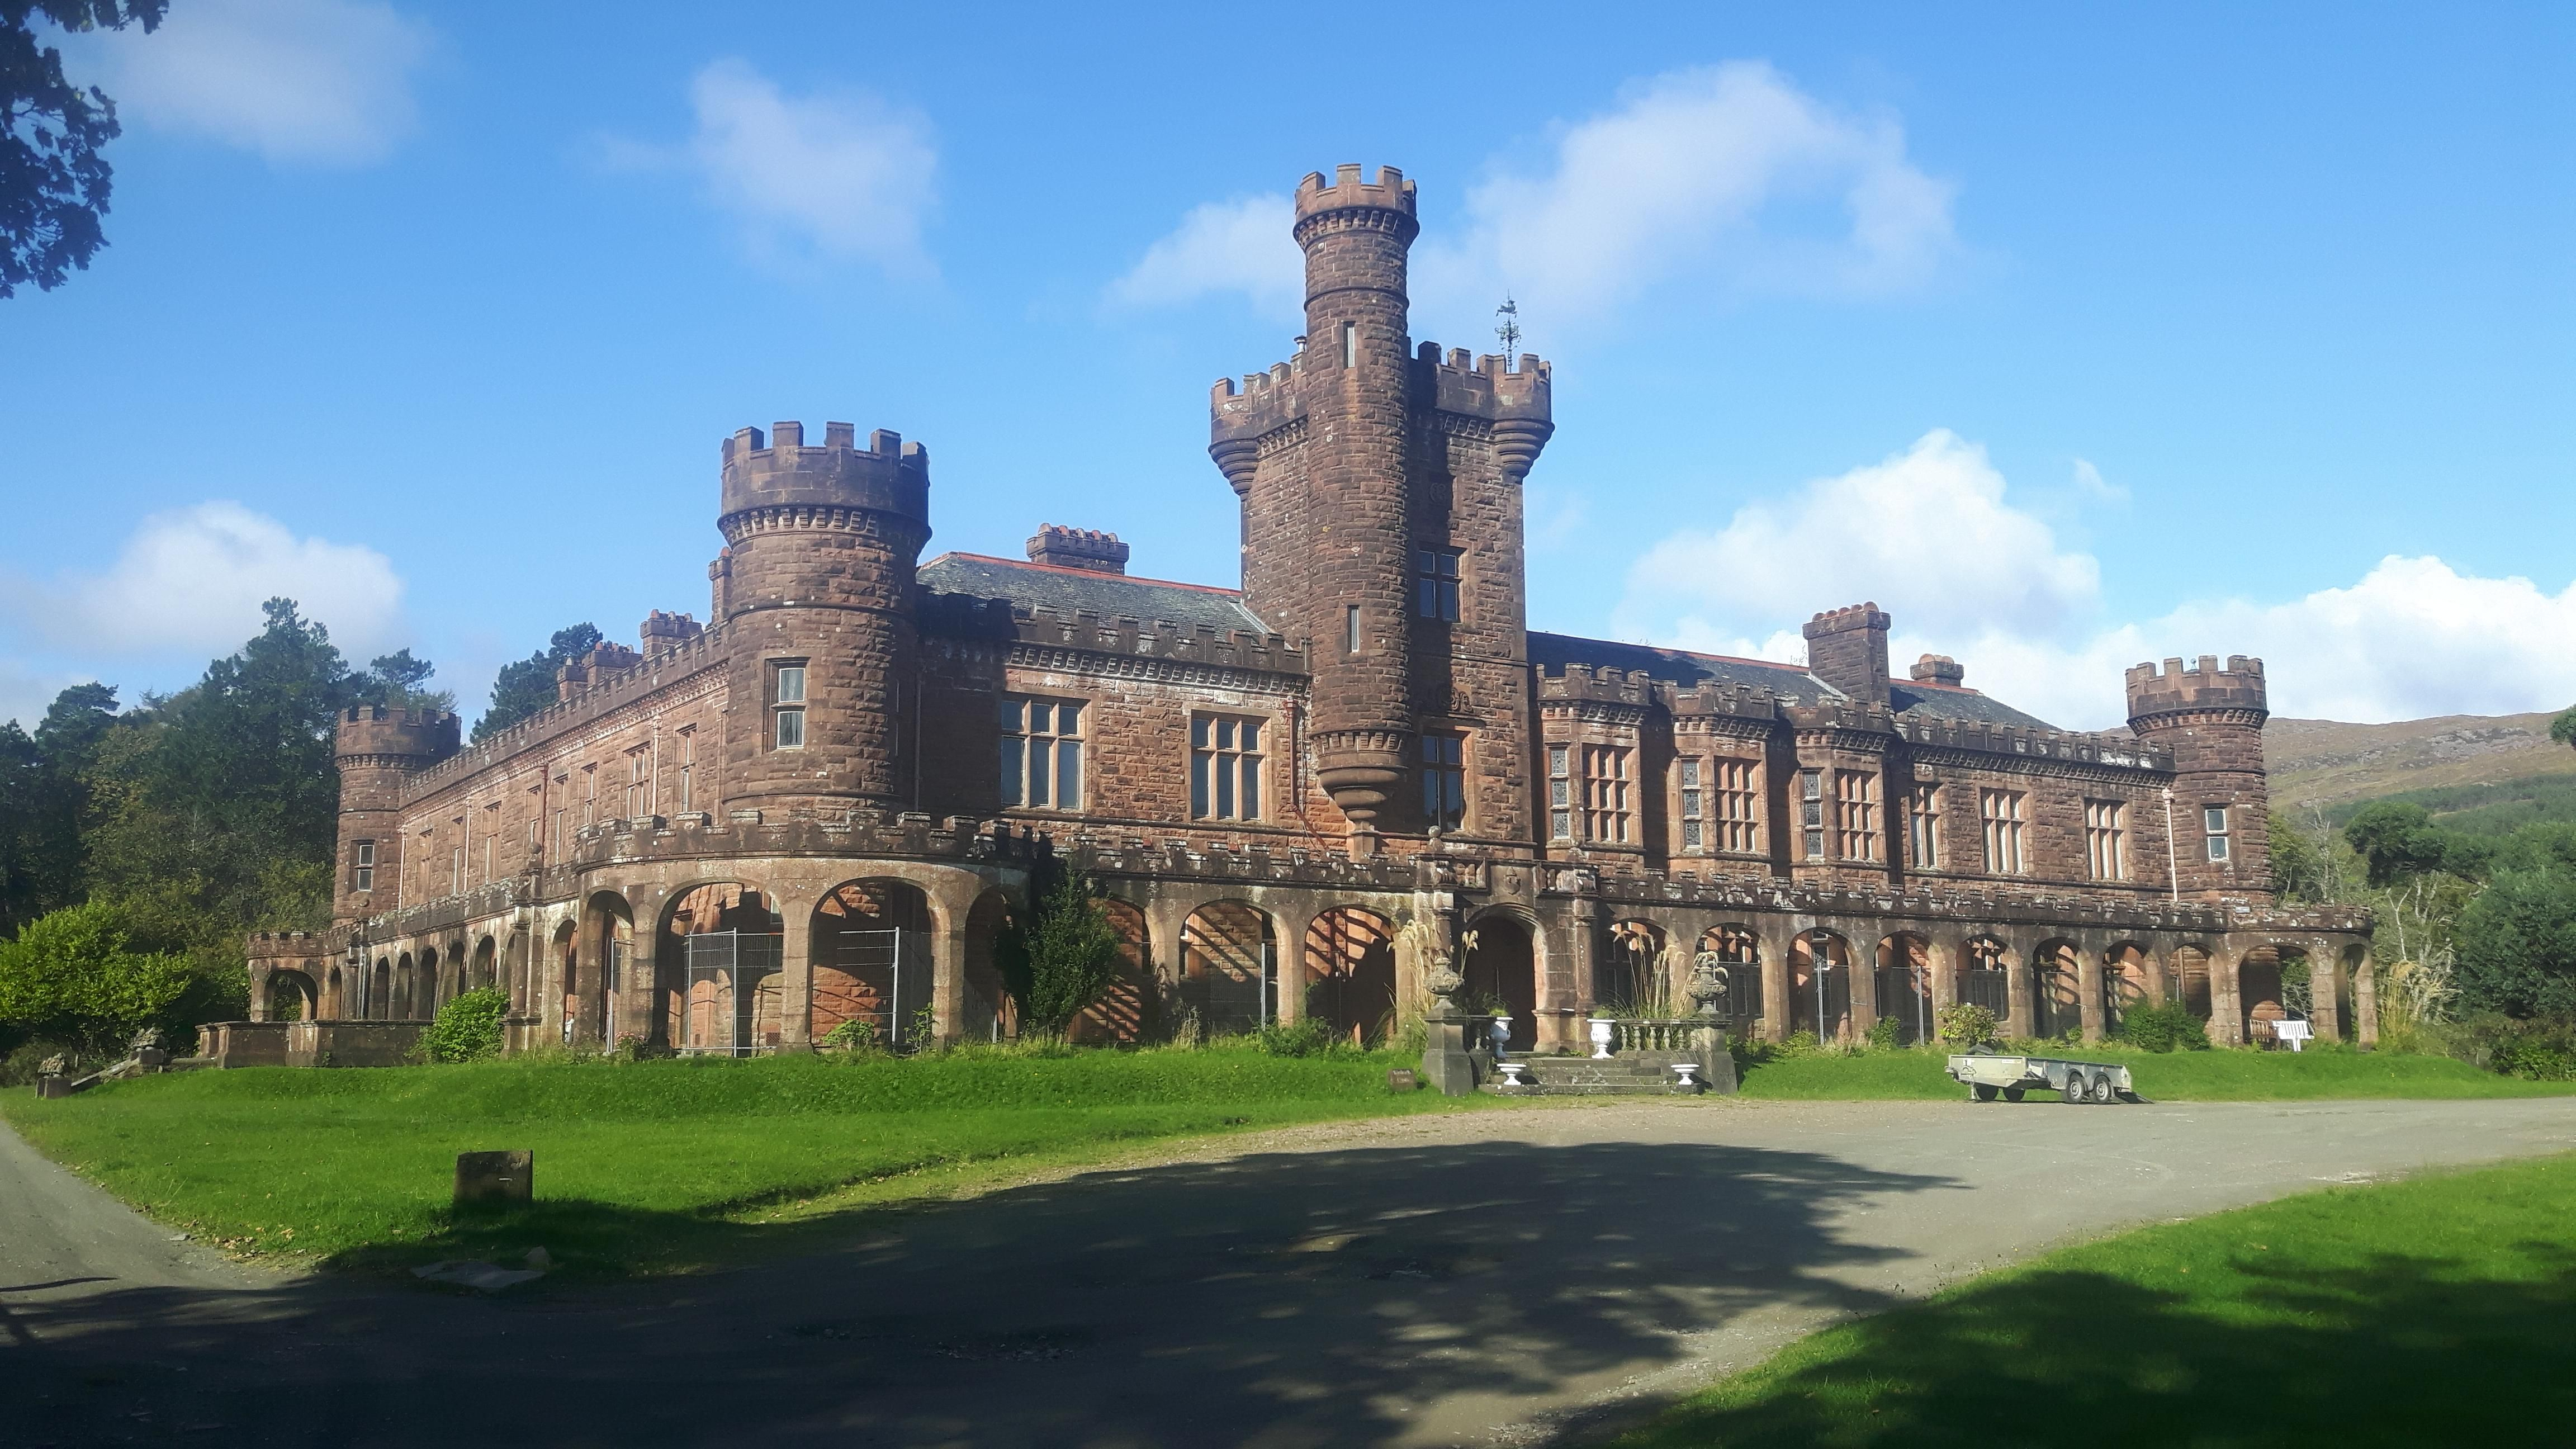 Kinloch castle Isle of Rum Scotland. Built 120 years ago